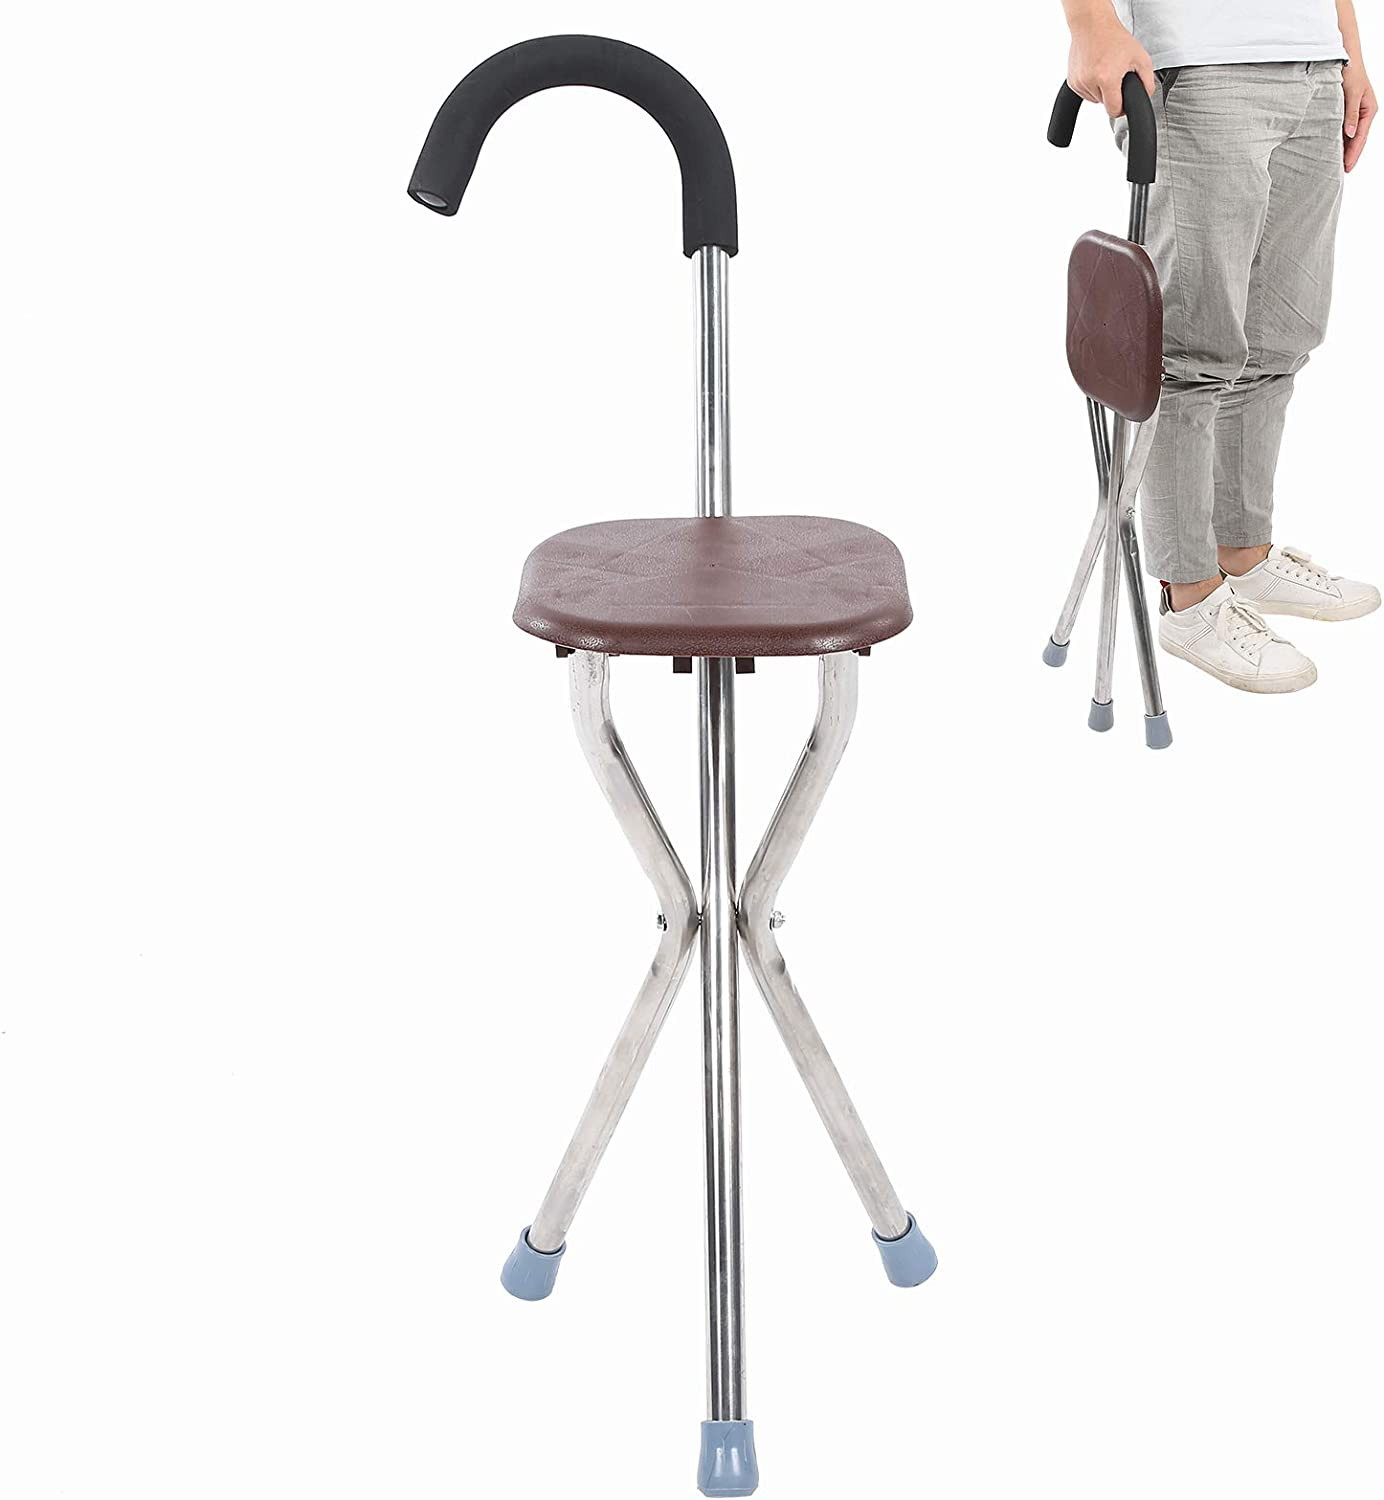 Pwshymi Cane Seat Fashionable Indianapolis Mall Folding fo Stool for New arrival Relaxion